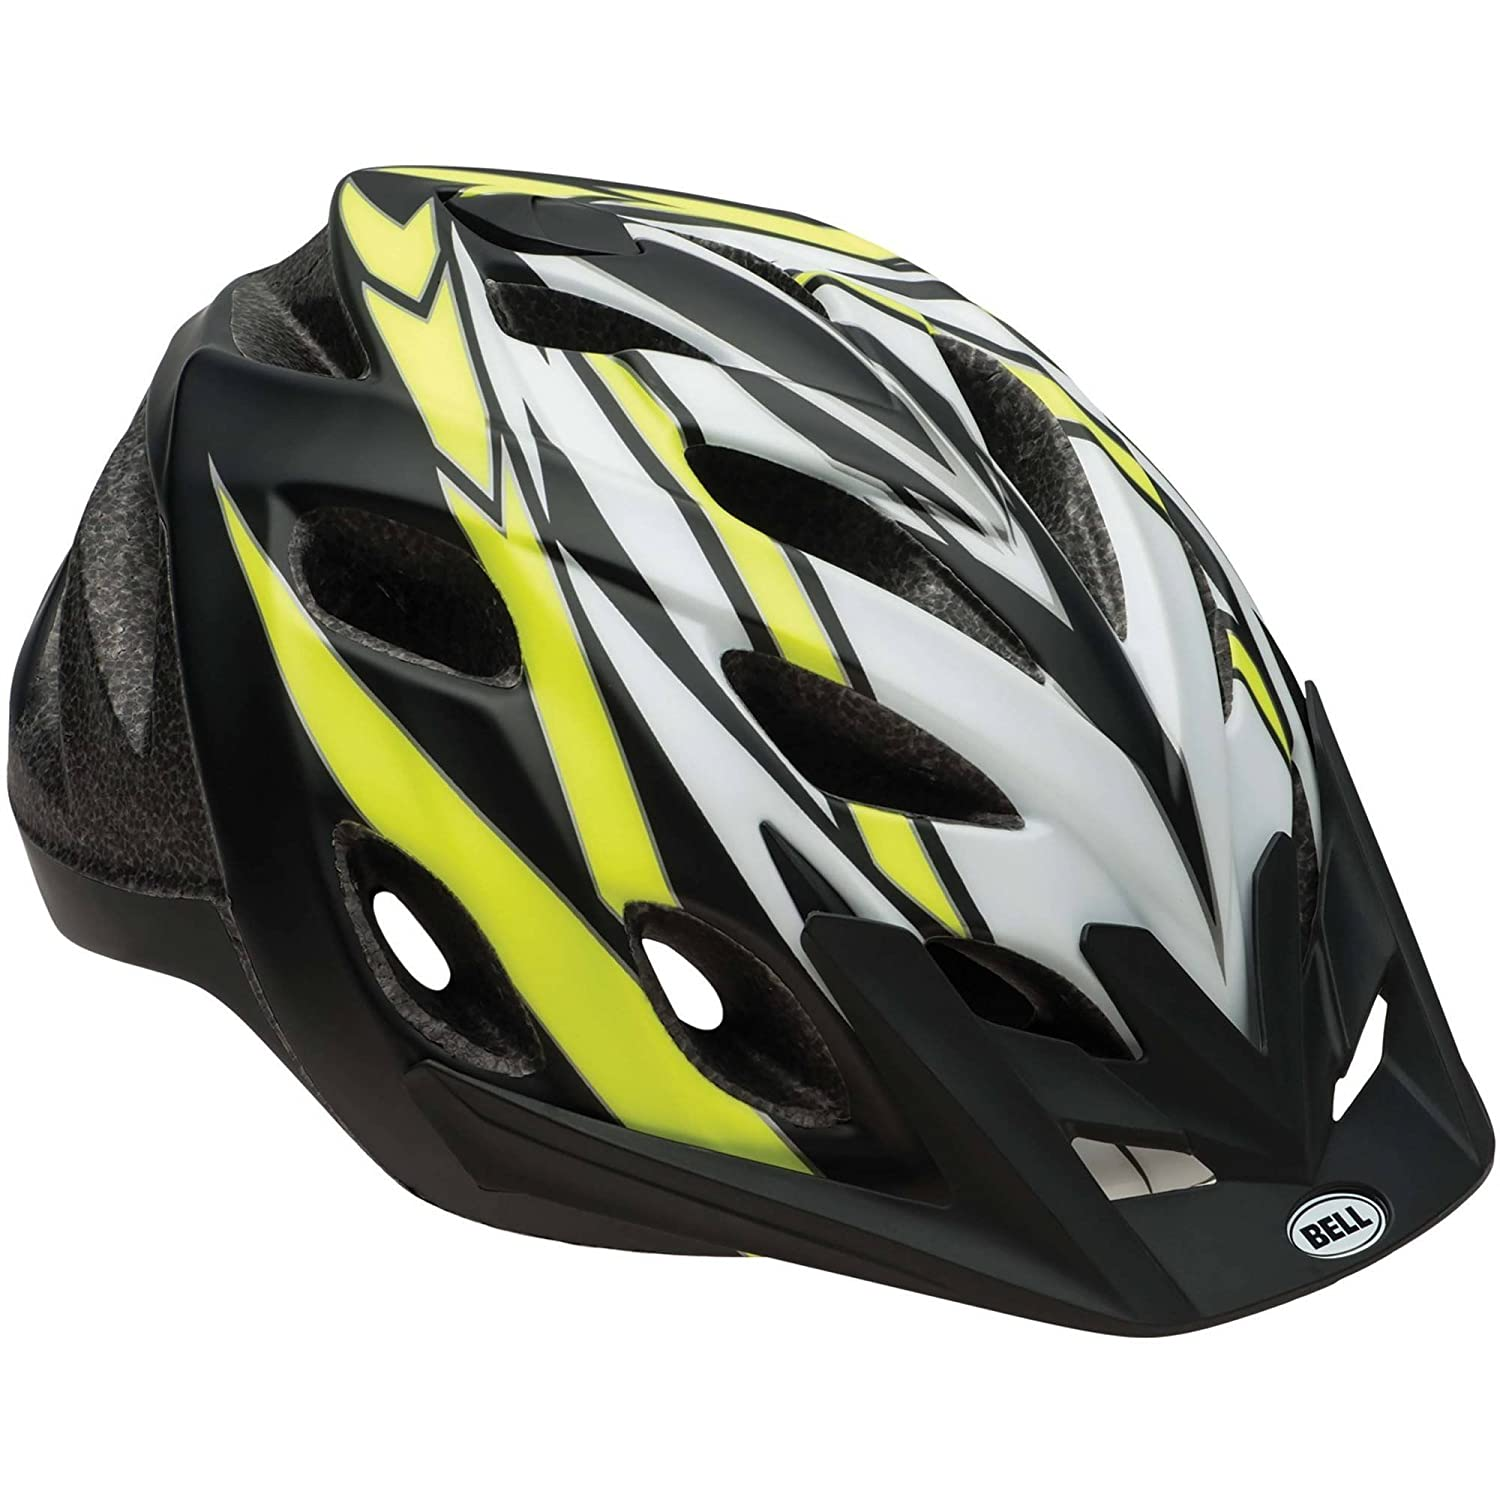 Bell Knack Bike Helmet – Lightweight Head Protective Gear for Adults